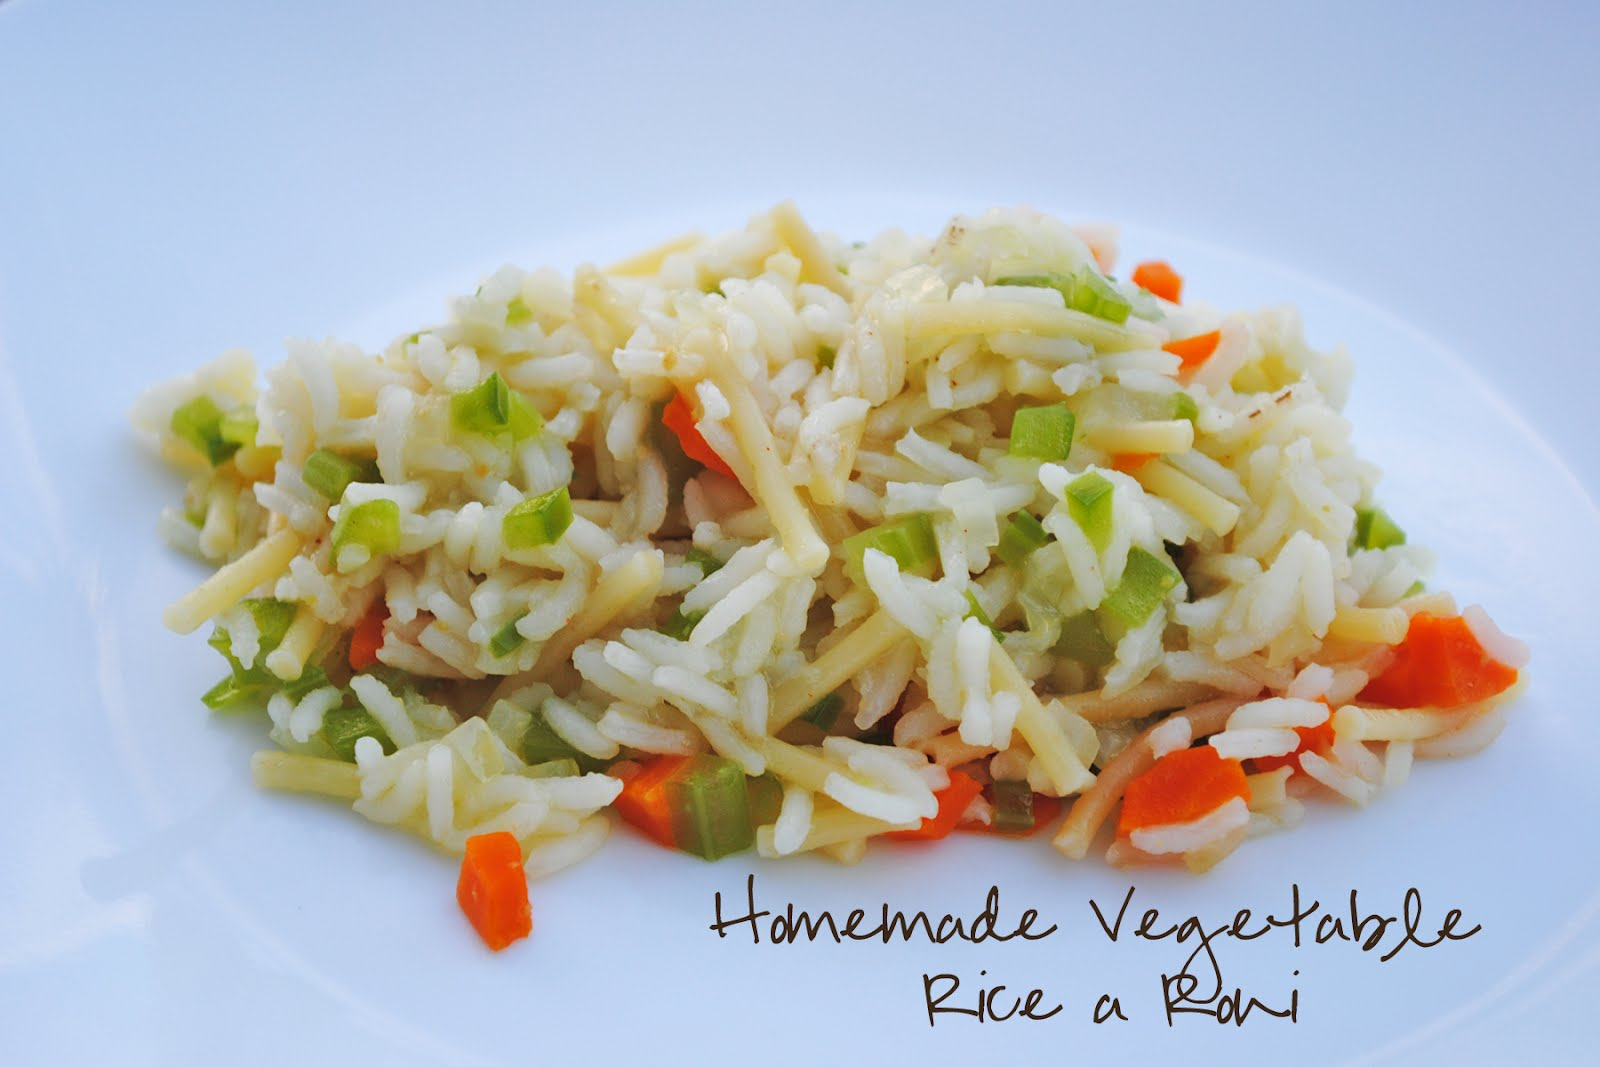 Durfee Family Recipes Homemade Vegetable Rice A Roni